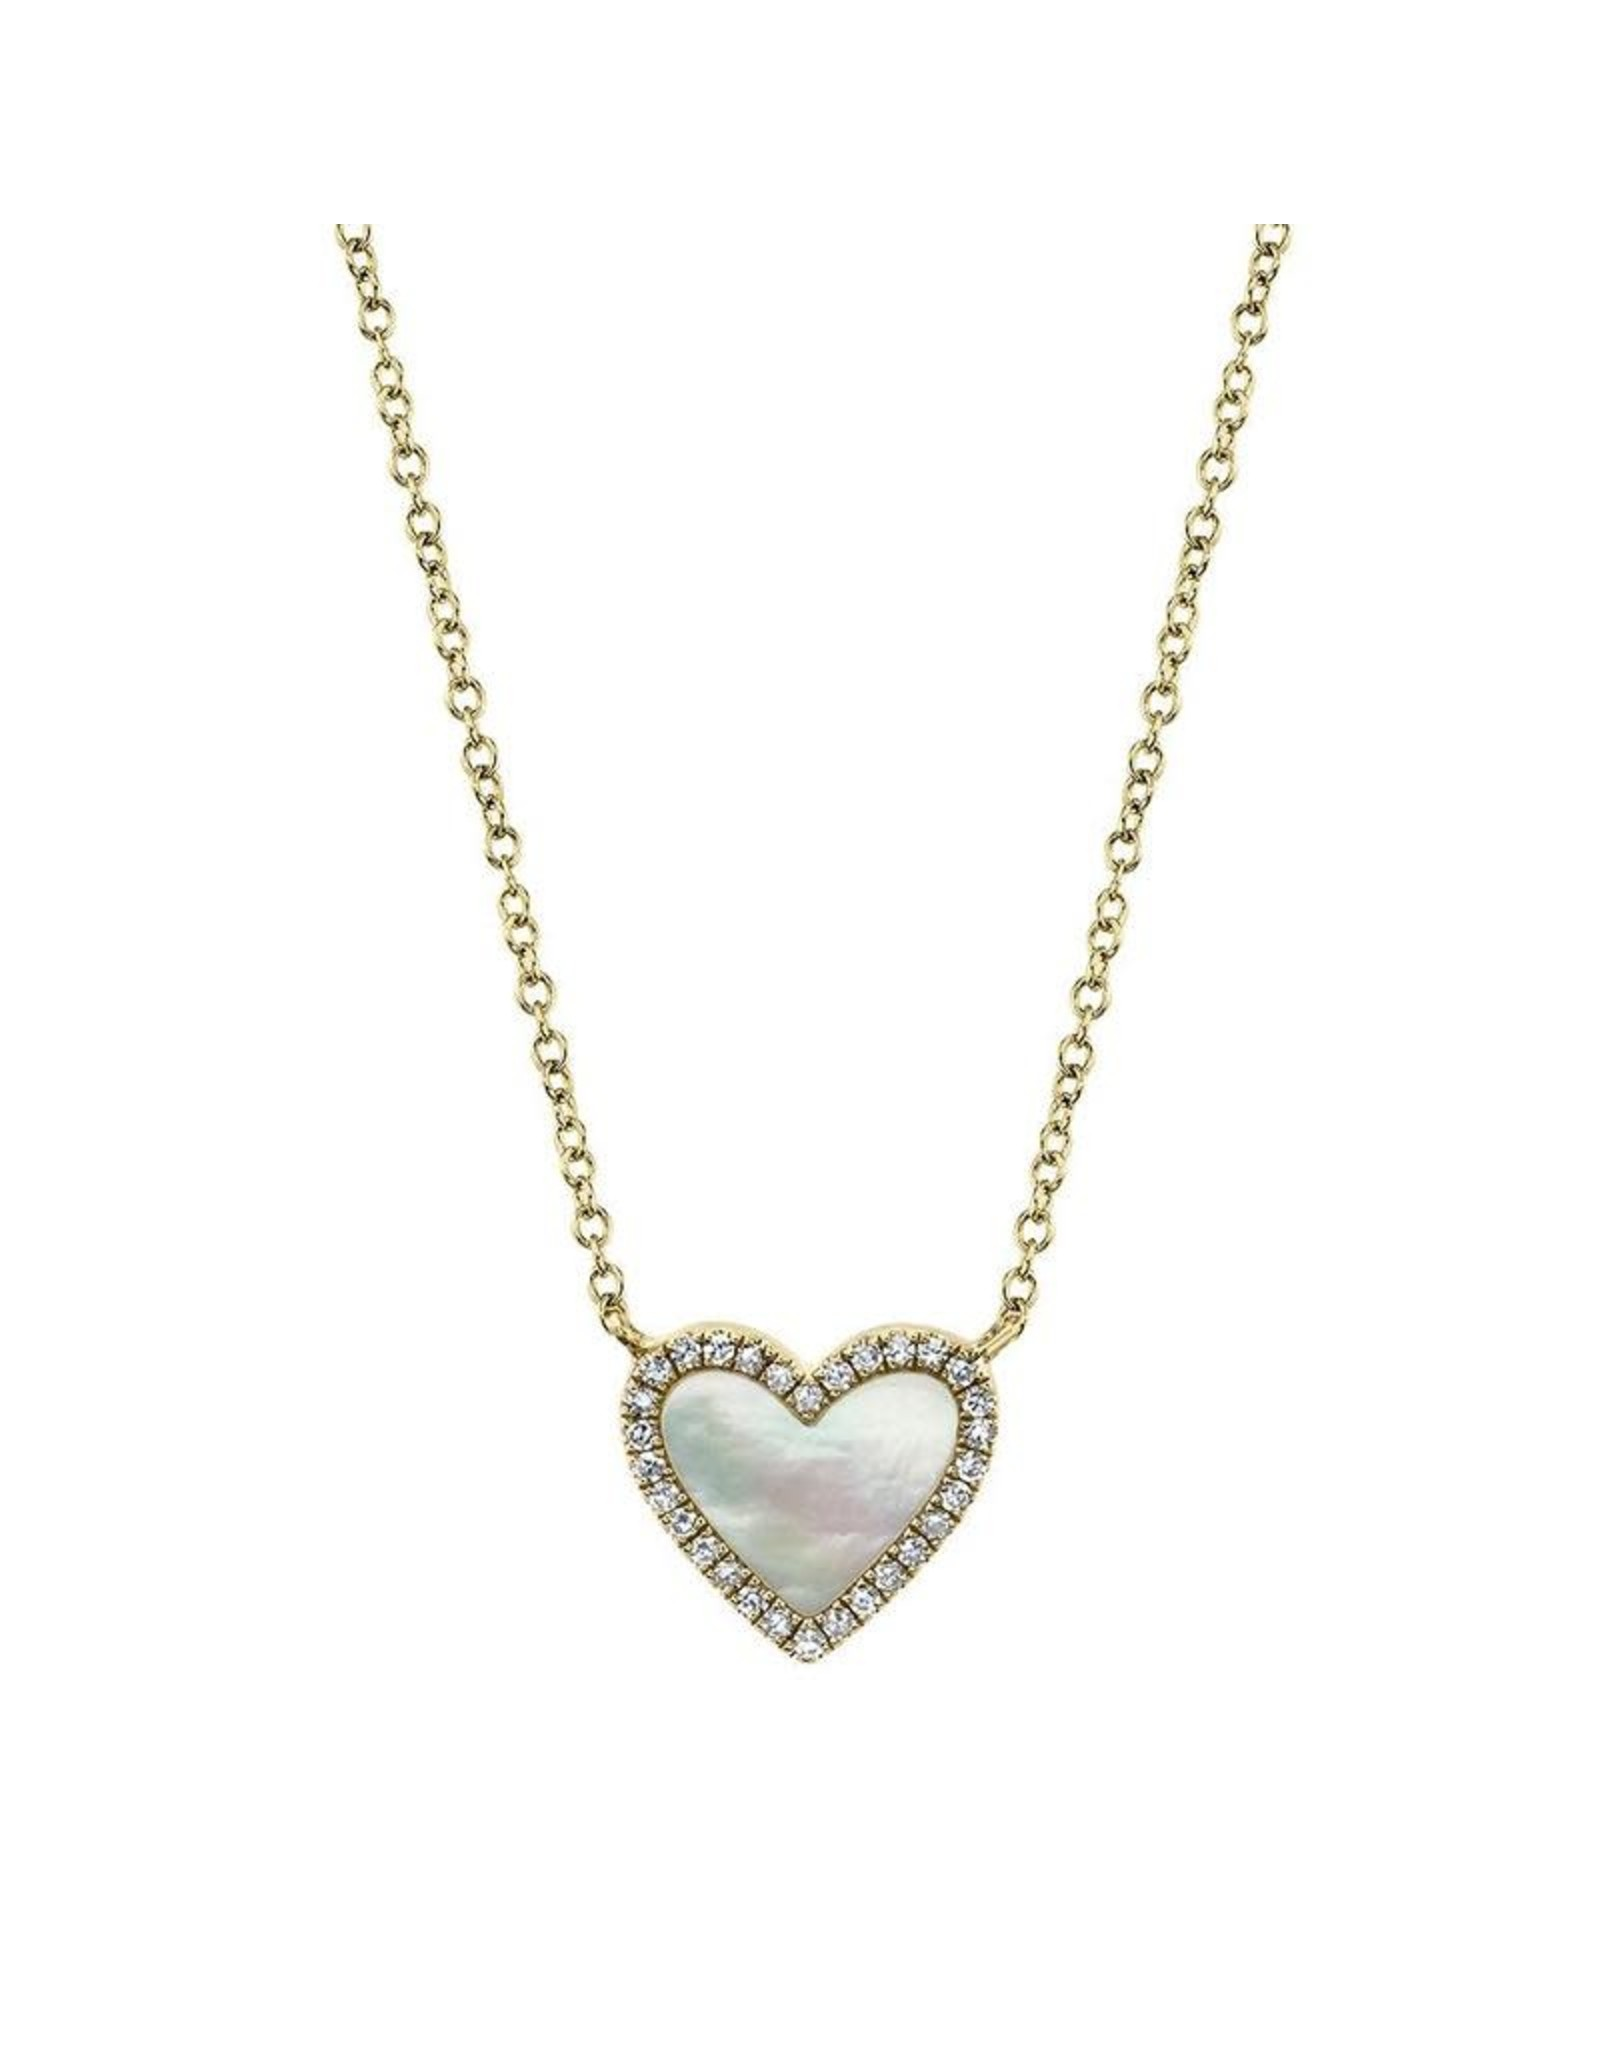 14K Yellow Gold Mother of Pearl and Diamond Heart Necklace, MOP: 0.56ct, D: 0.09ct